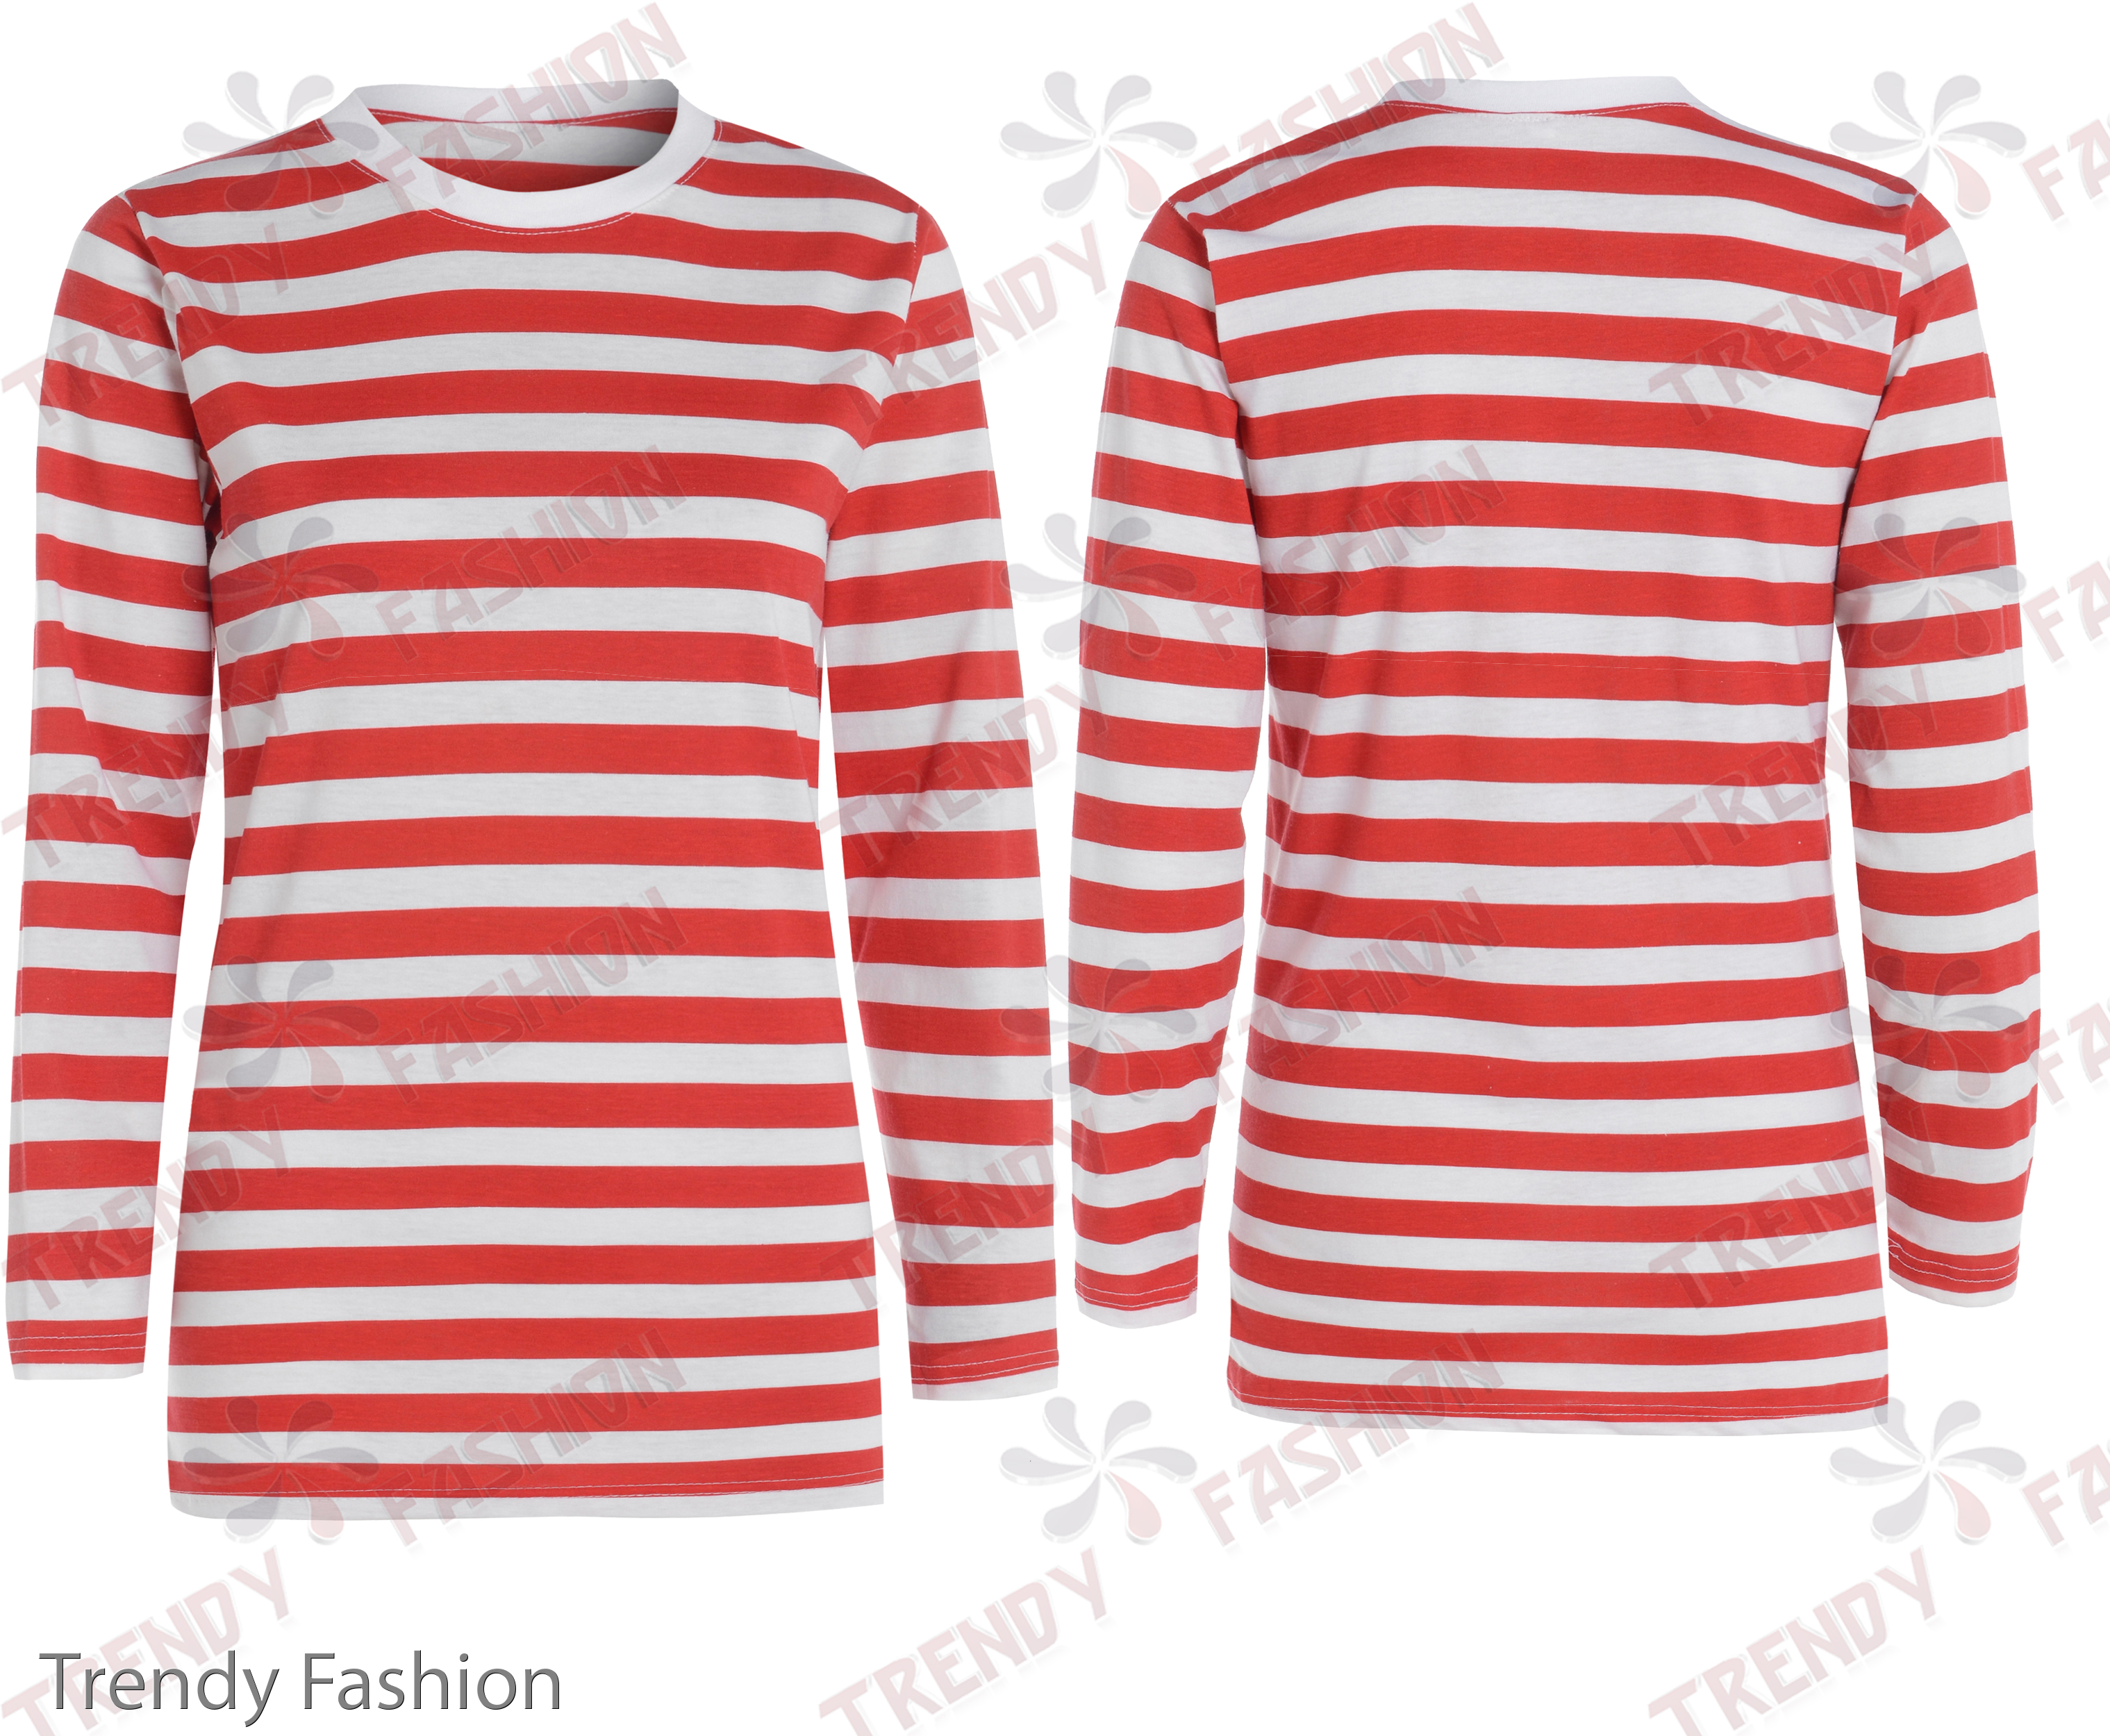 ea78f18c6 Red And White Striped T Shirt Ladies - DREAMWORKS